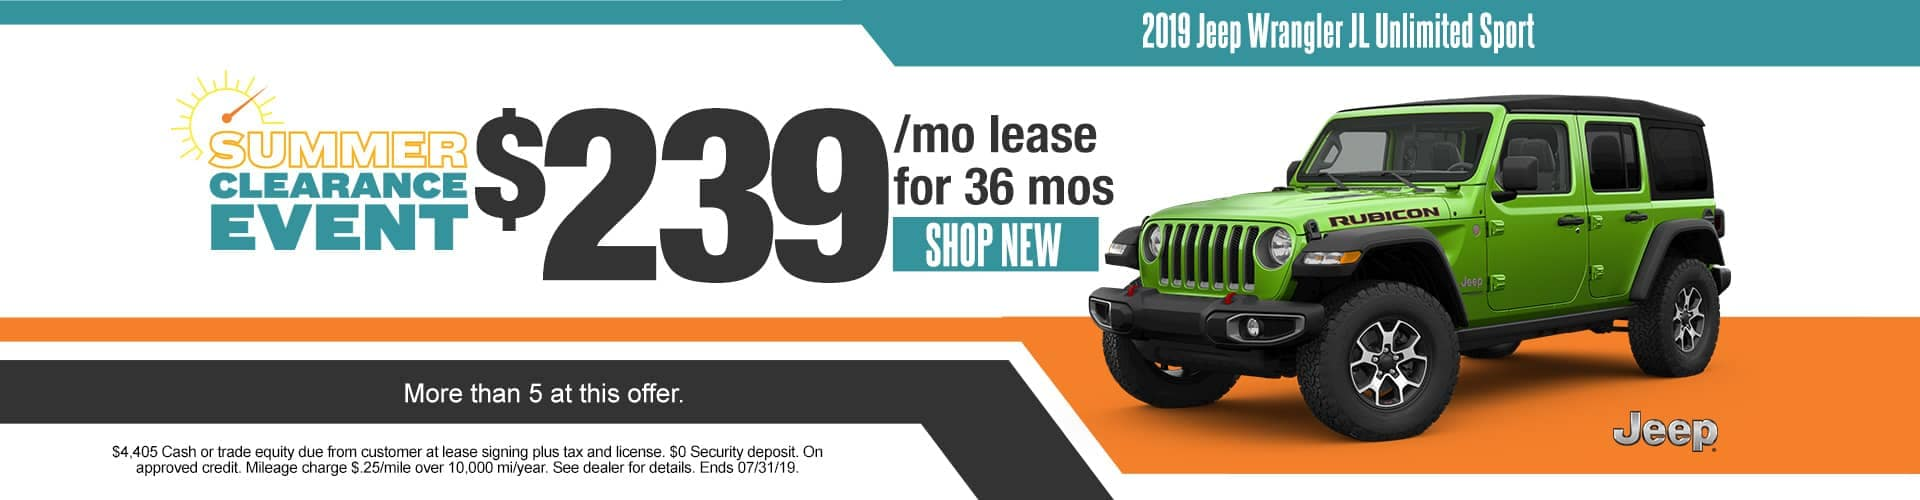 hight resolution of wrangler clearance event banner for desktop